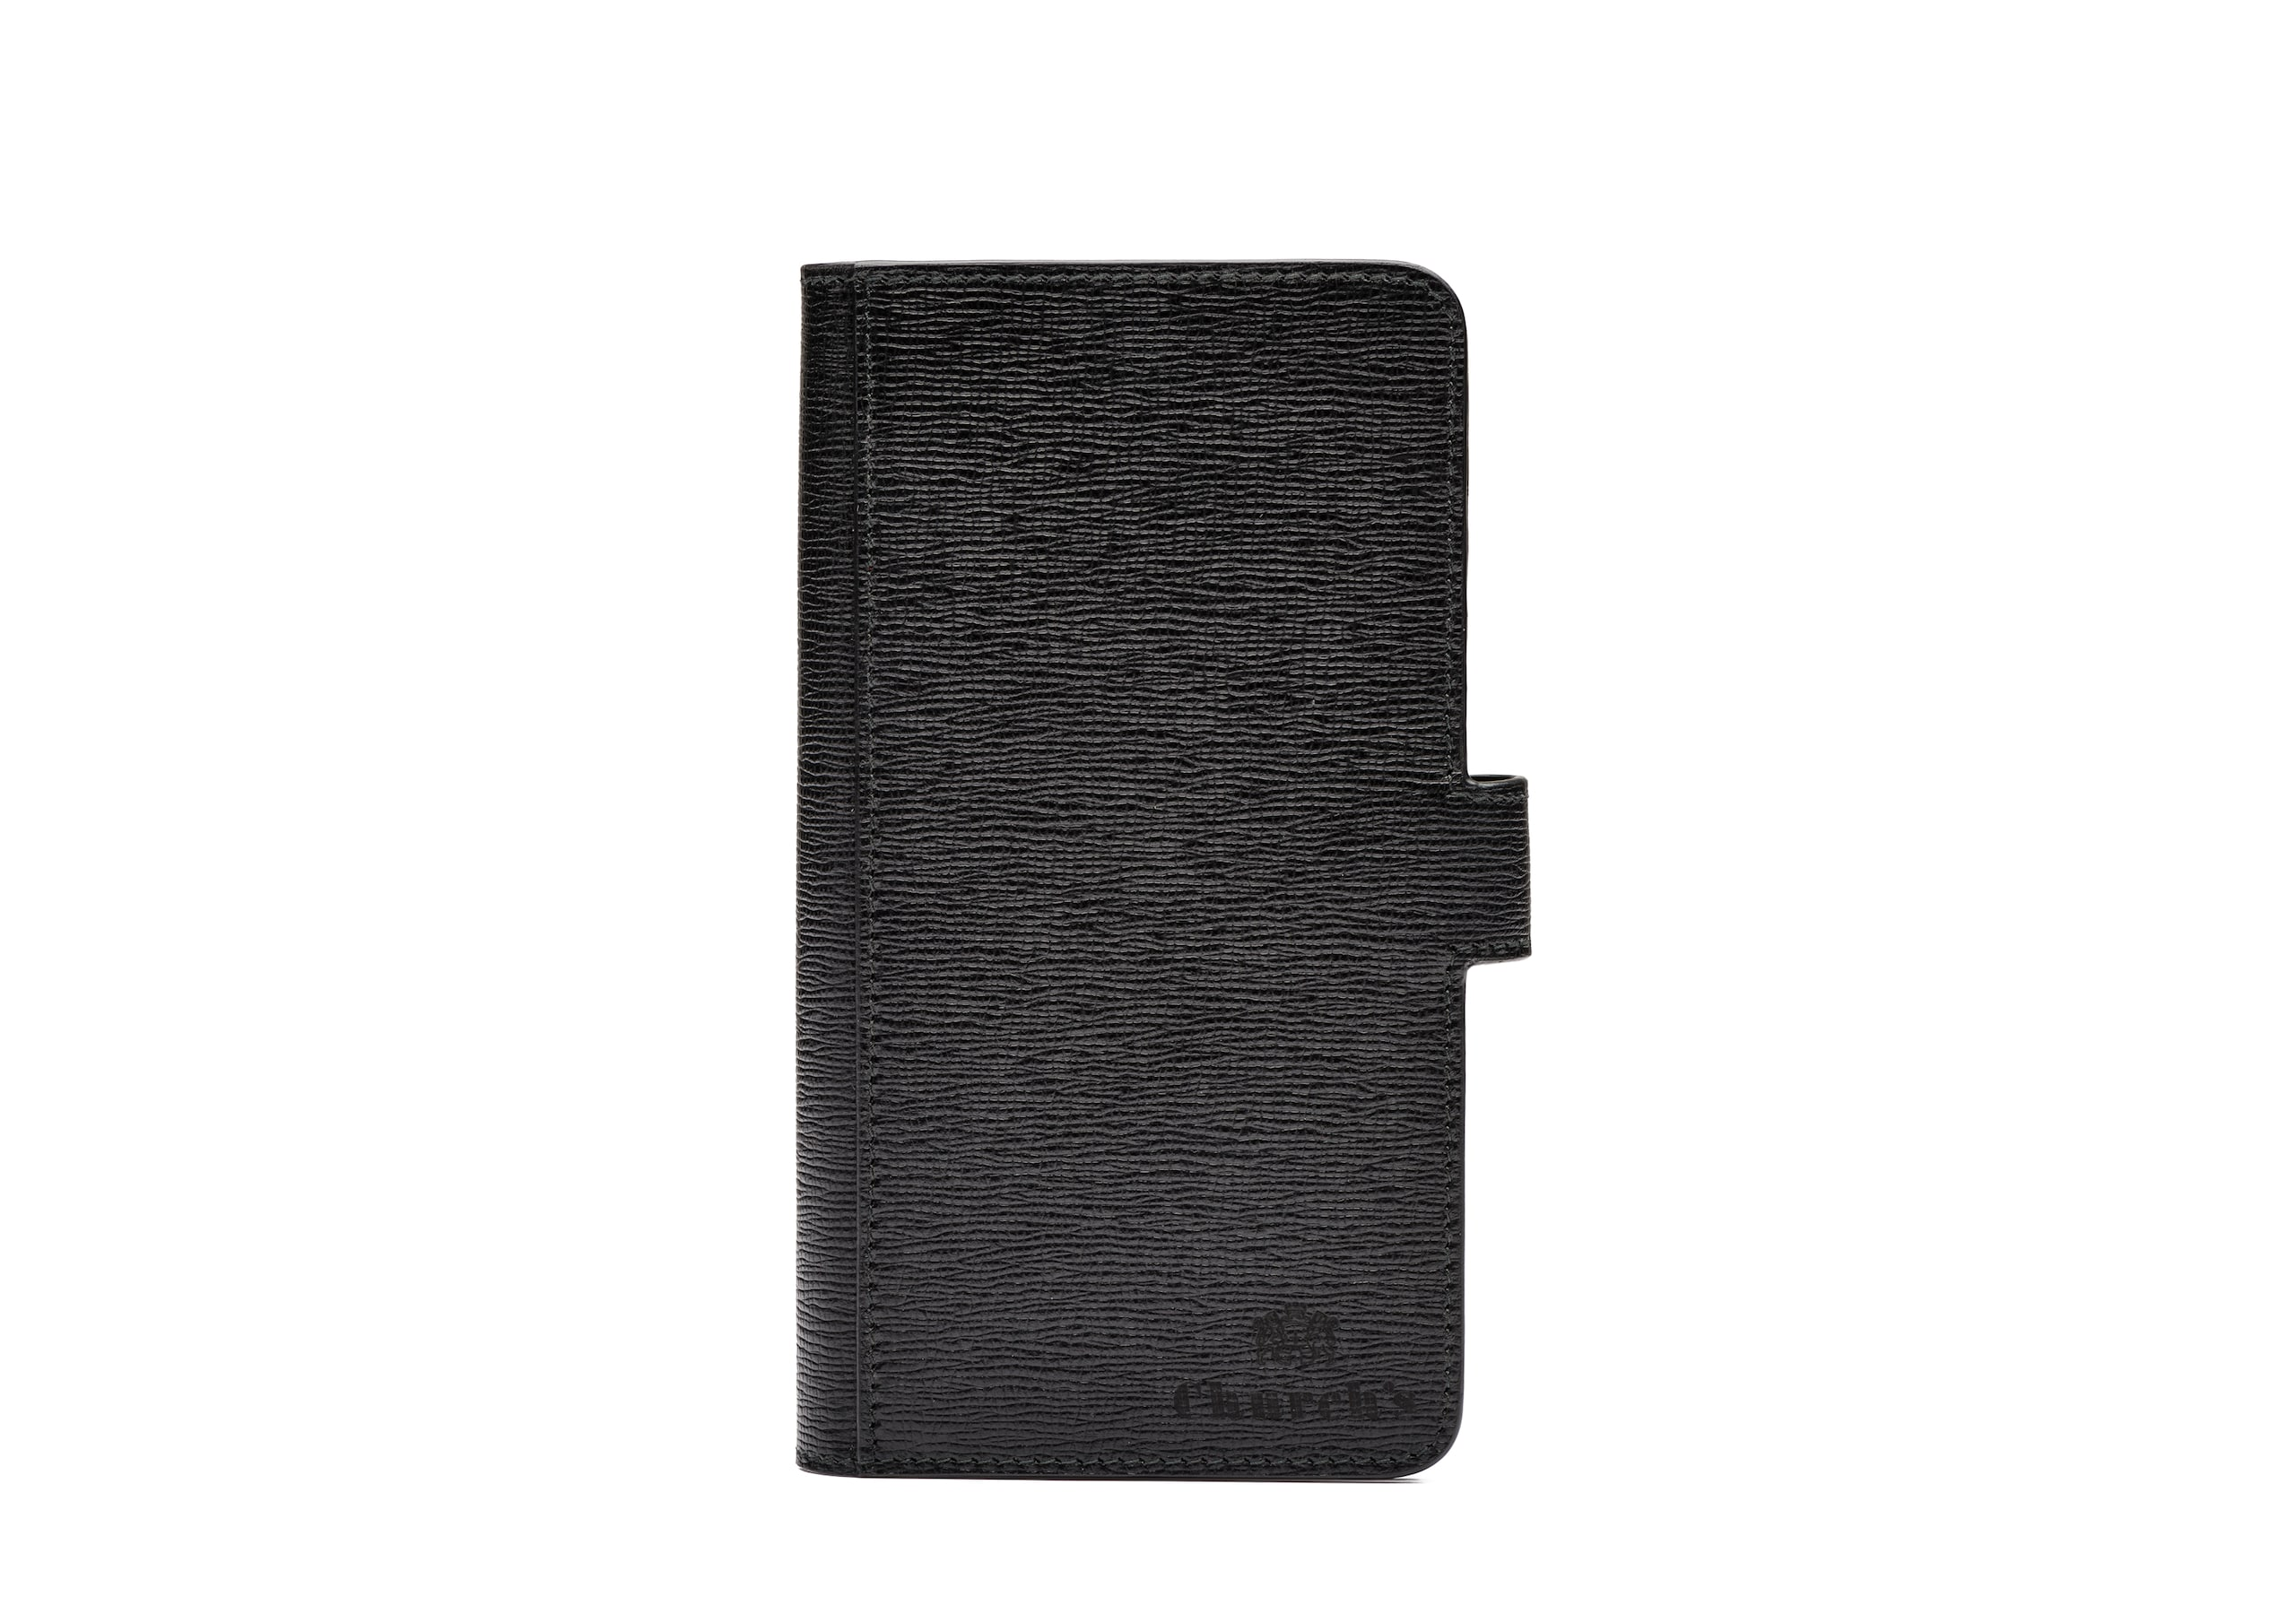 Phone wallet Church's St James Leather Phone Wallet Black